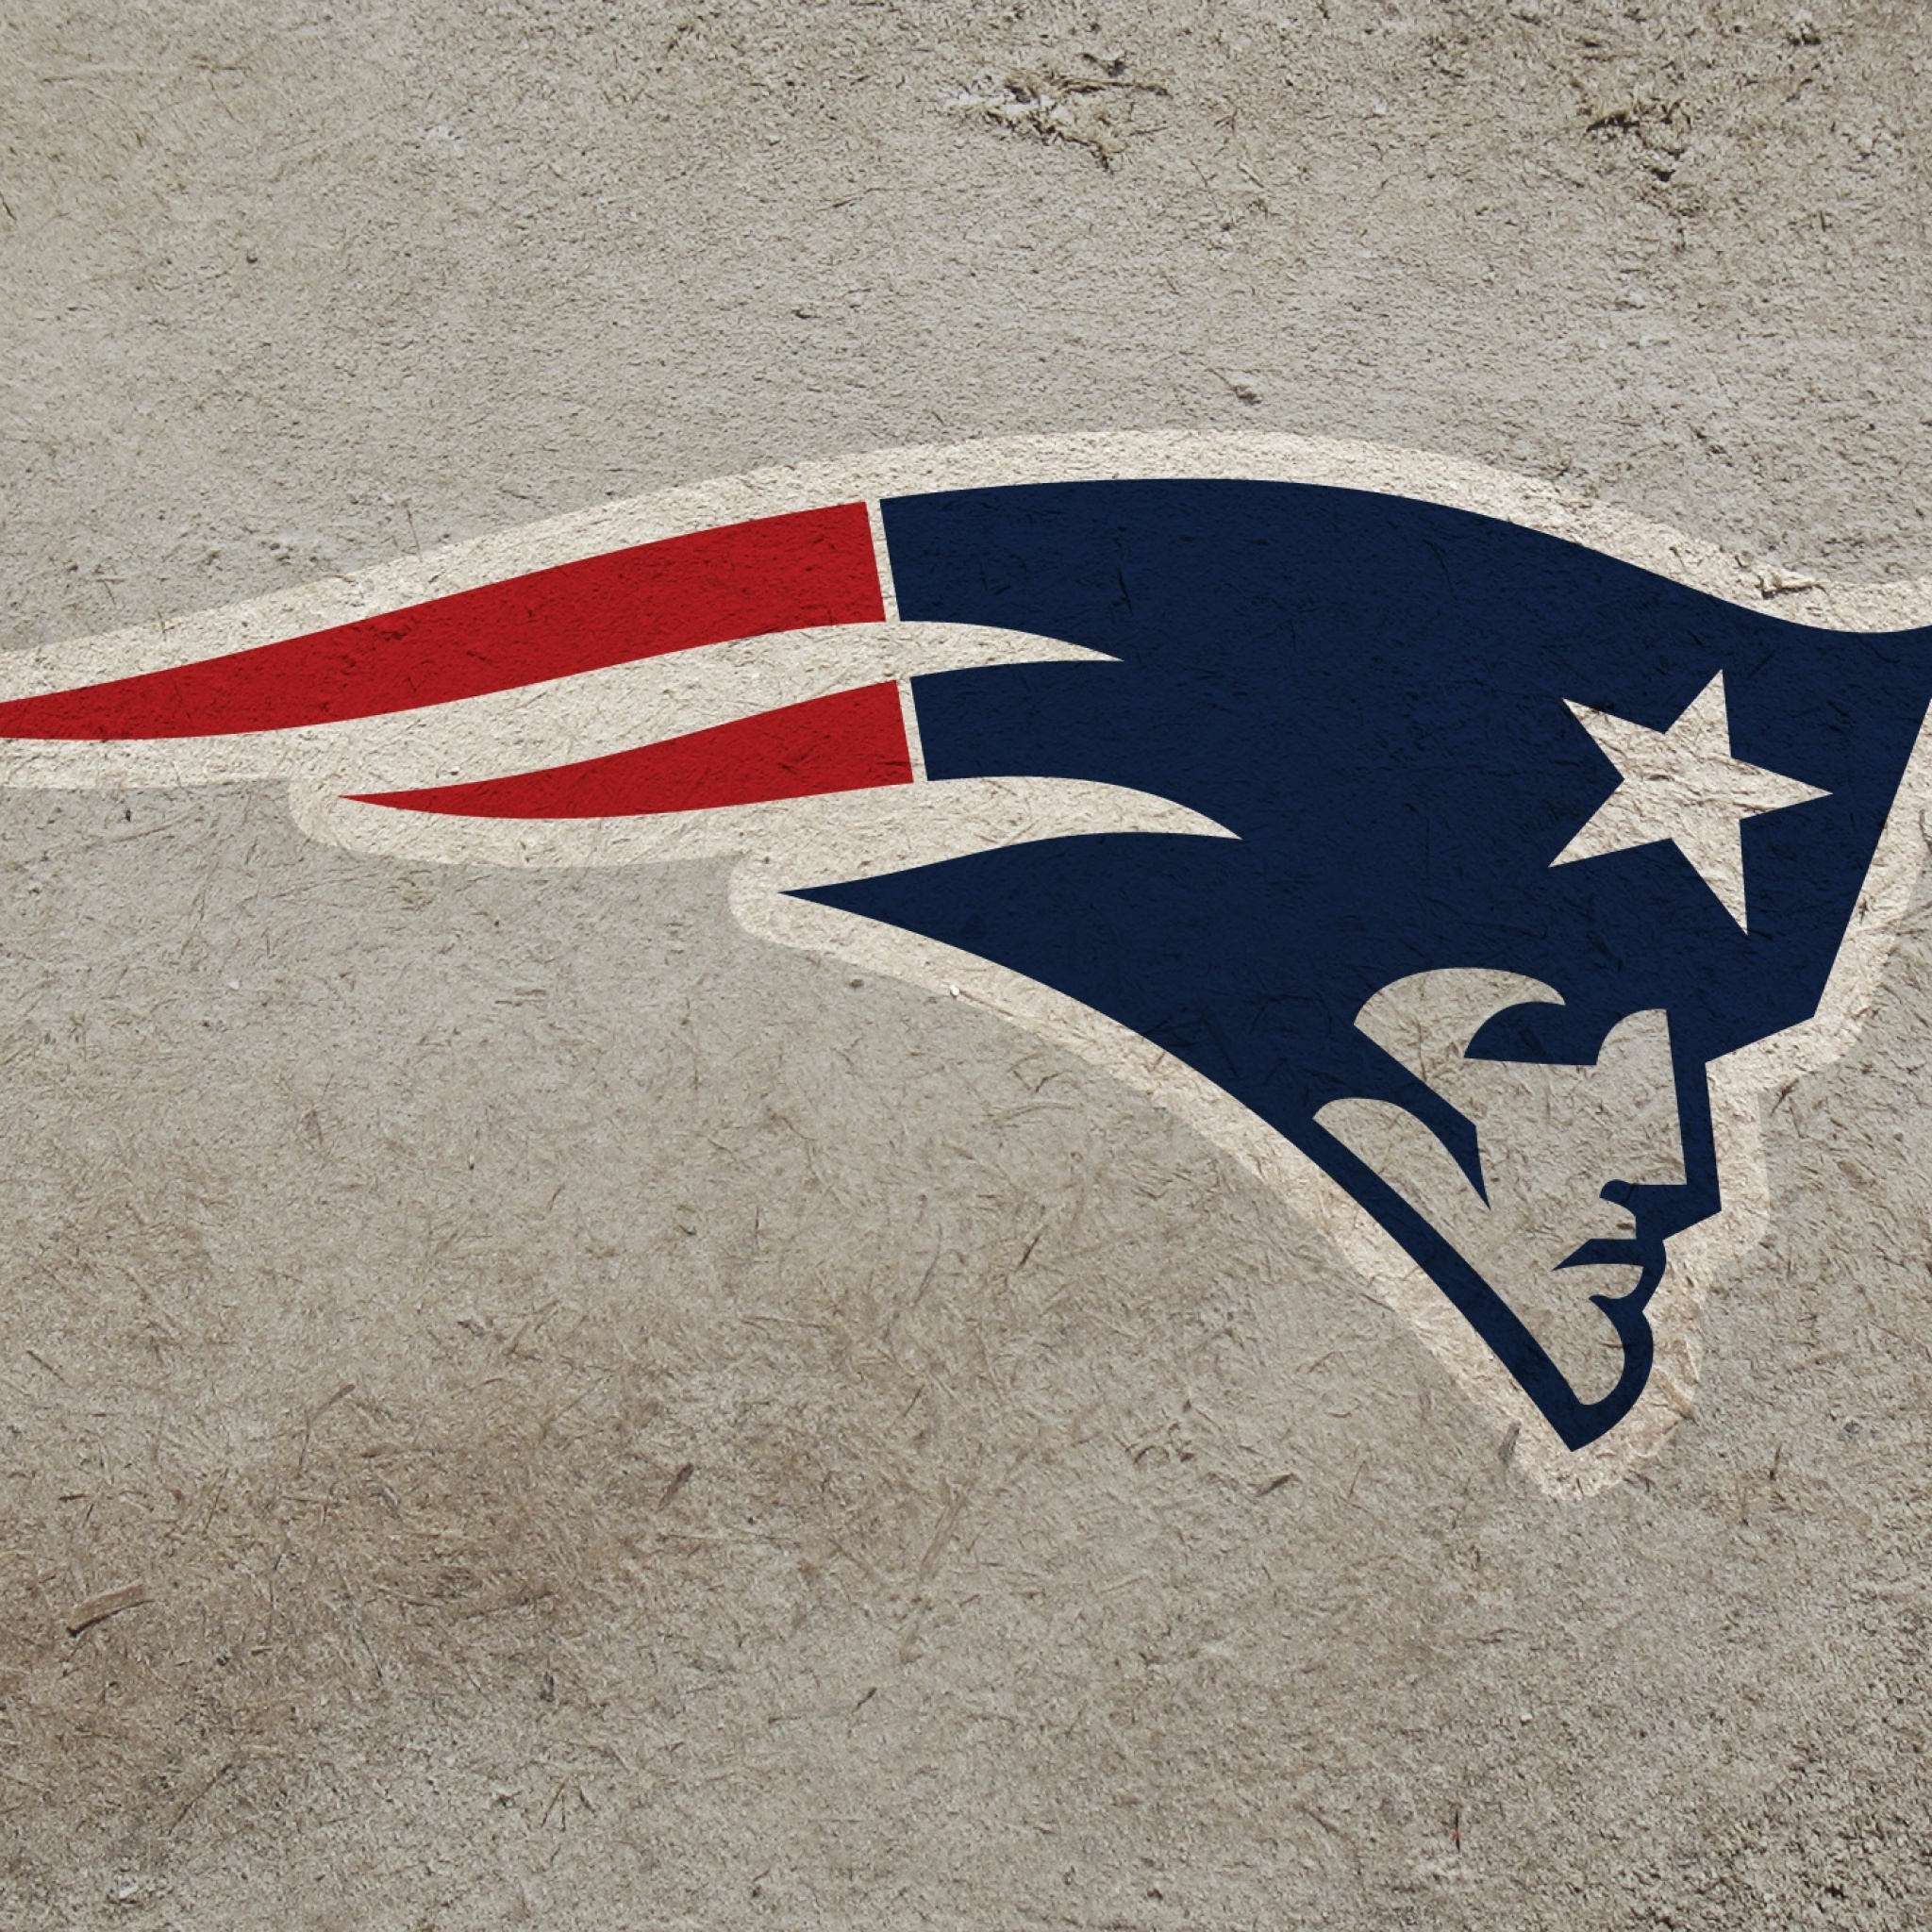 Wallpapers of the week Superbowl XLIX wallpapers for iPhone and iPad 2048x2048